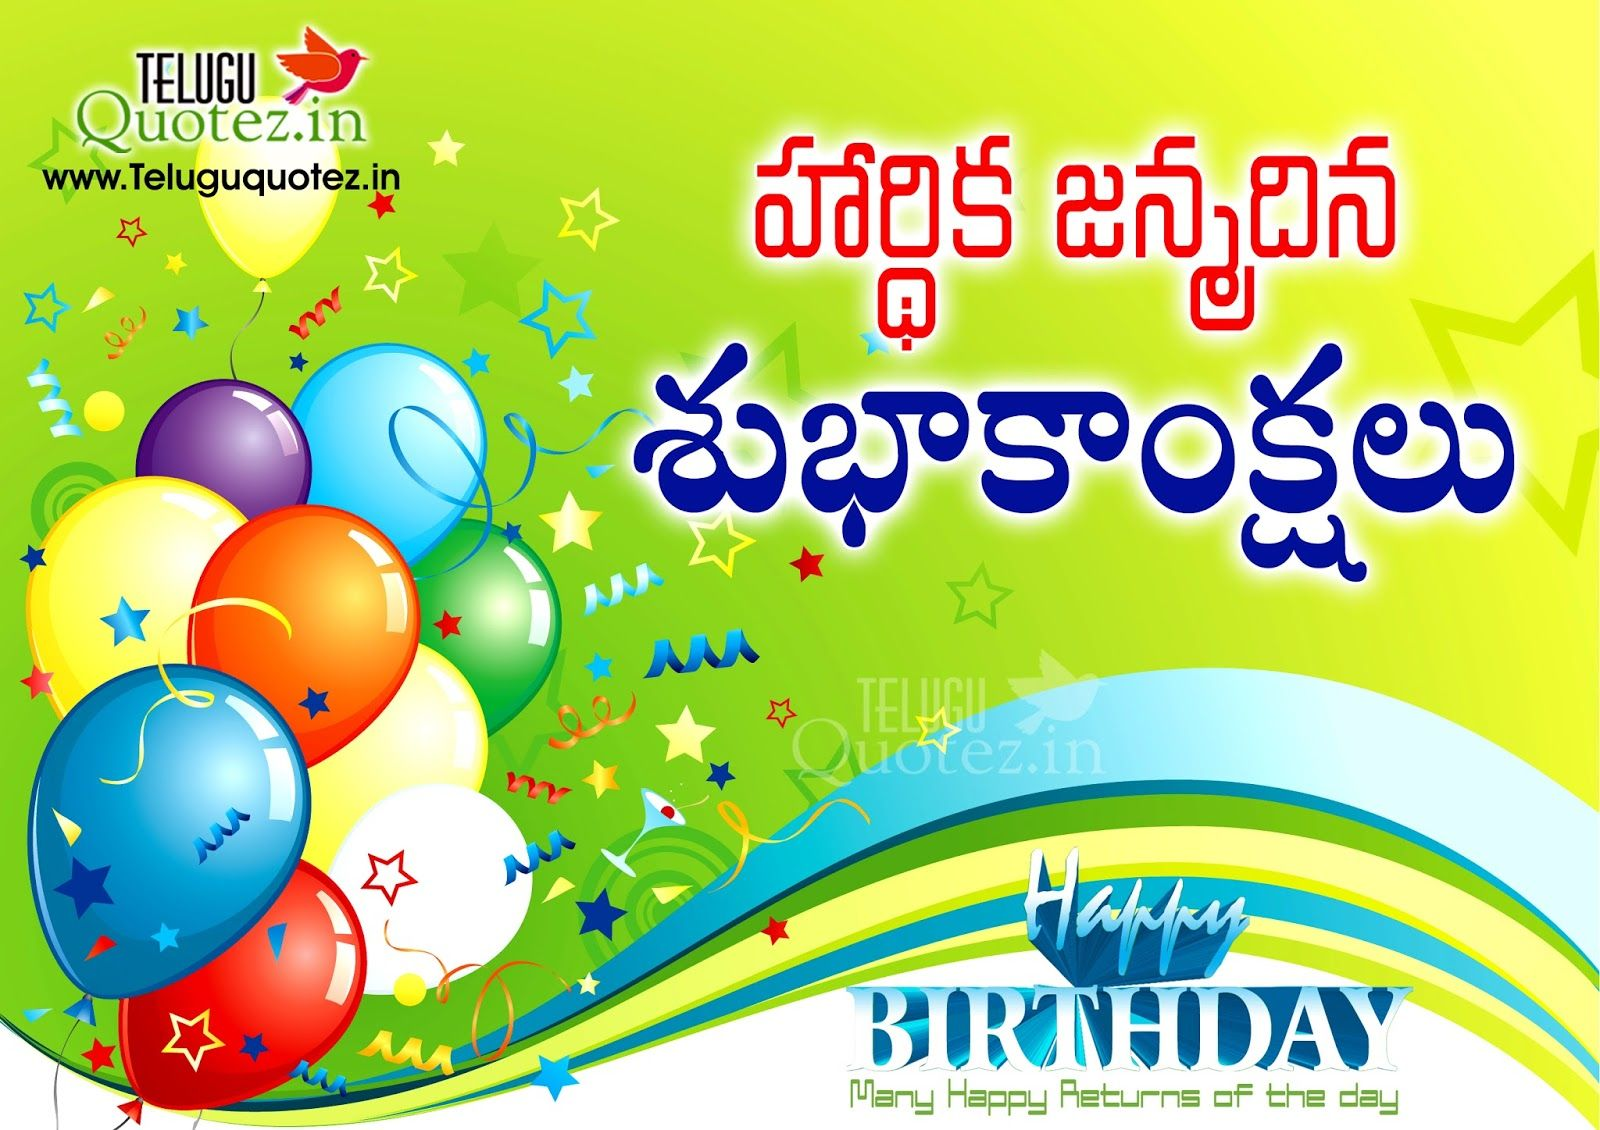 Birthday quotes and wishes in telugu images Teluguquotez